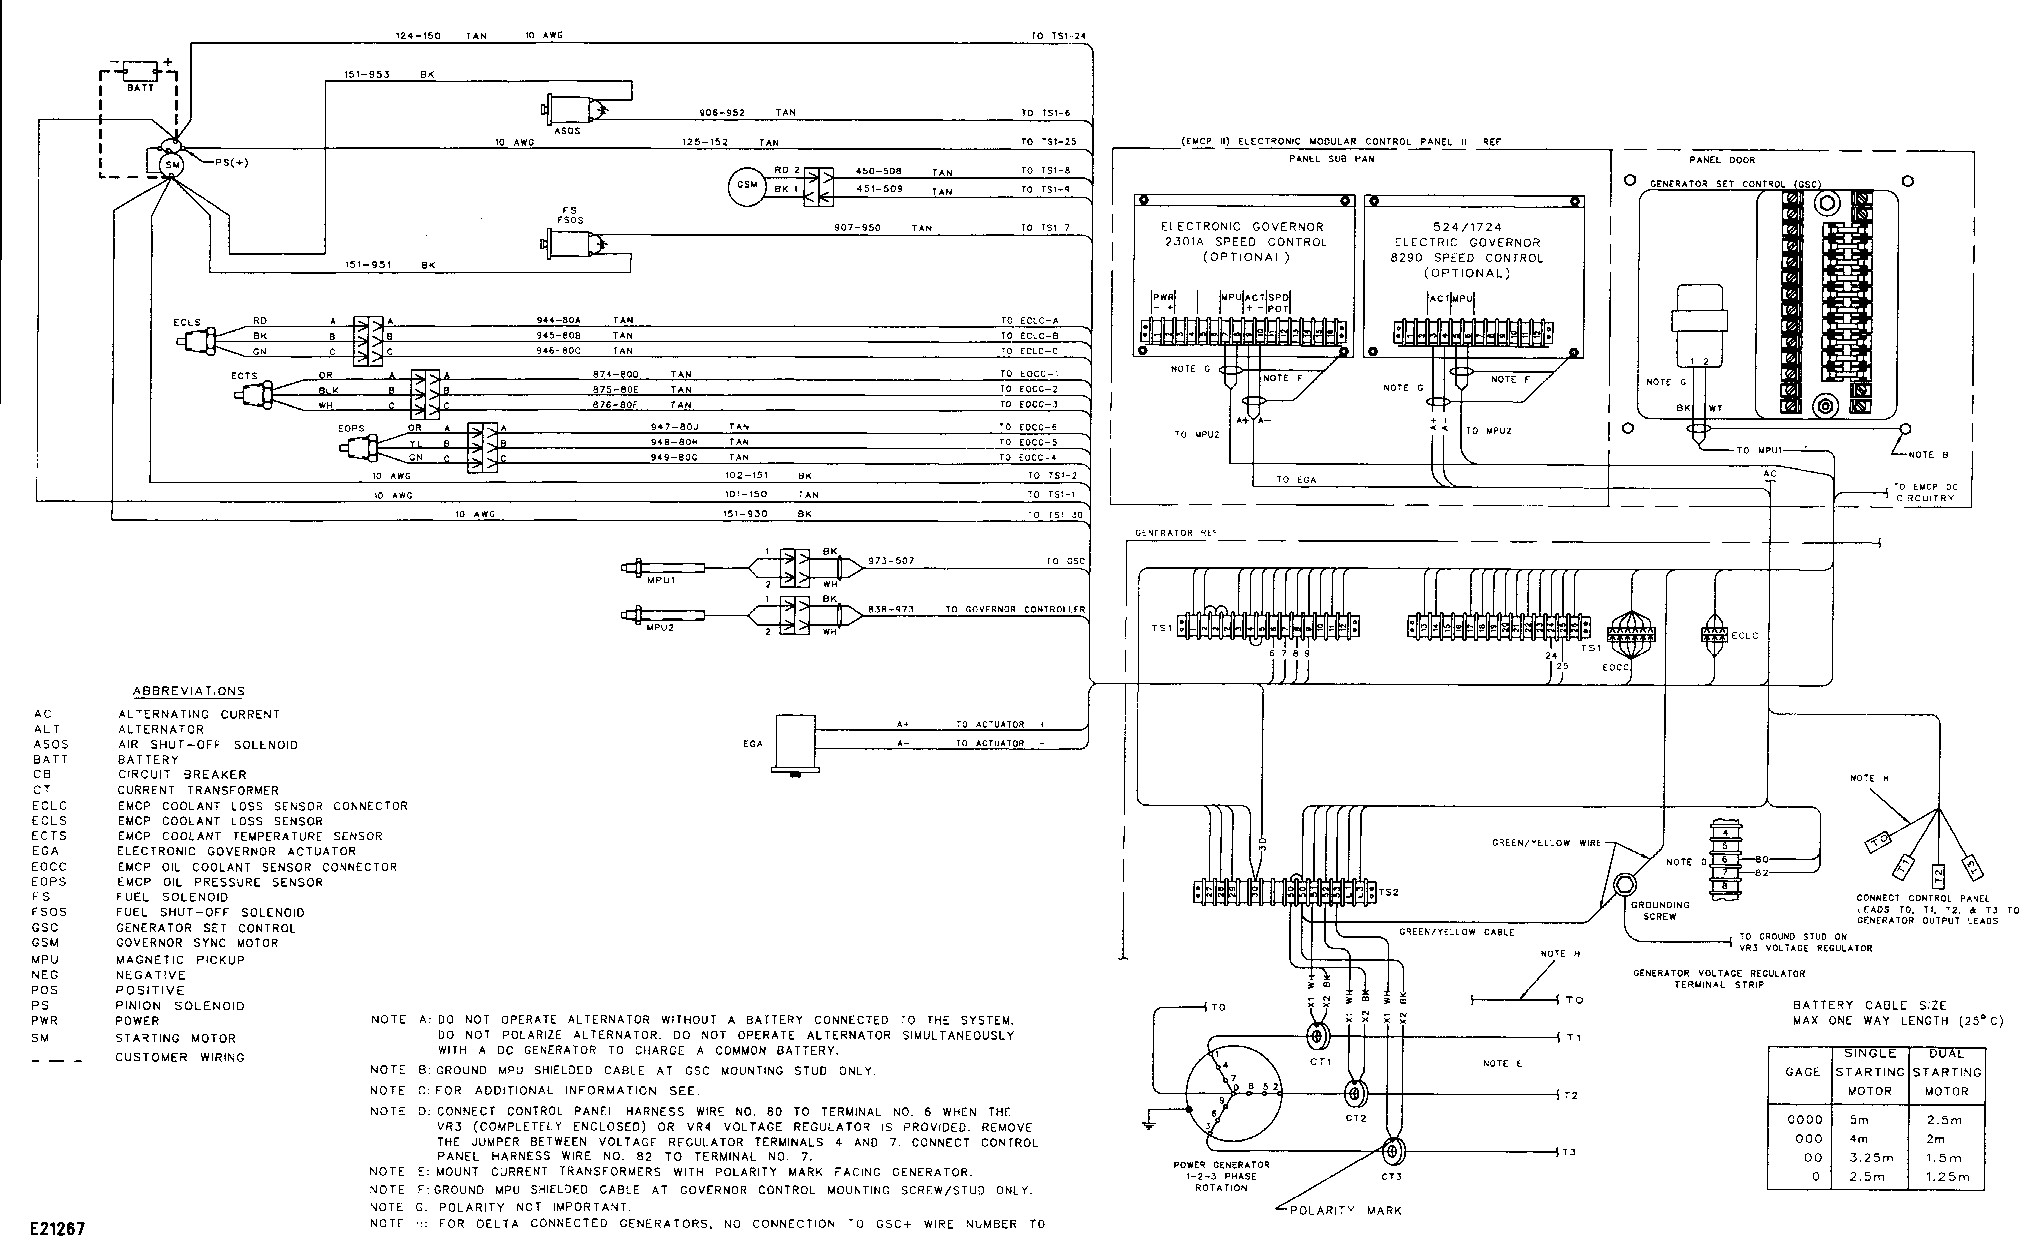 2005 c15 ecm wire diagram 3406b cat engine diagram | wiring library caterpillar c15 engine wire diagram